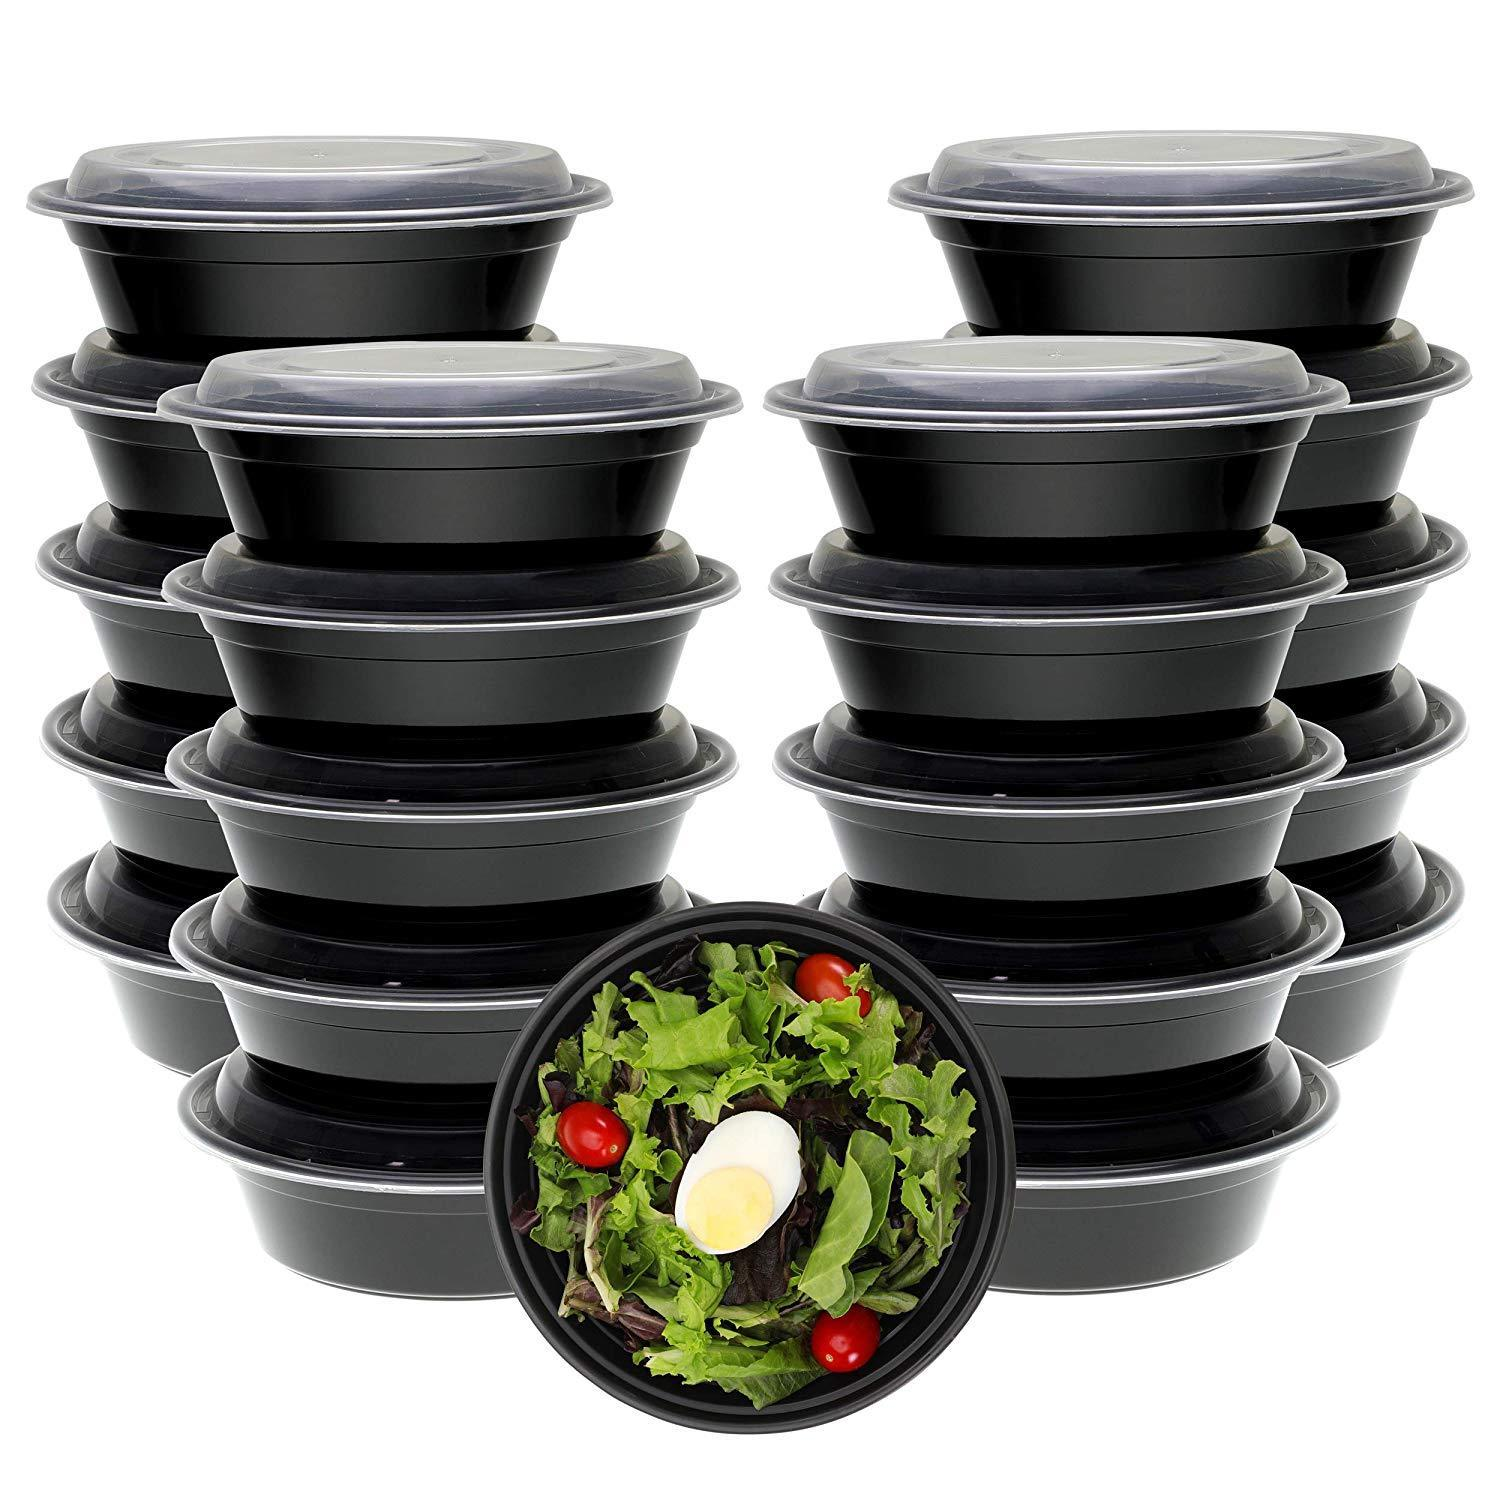 Freshware Meal Prep Containers [21 Pack] Bowls with Lids, Food Storage Bento Box 1